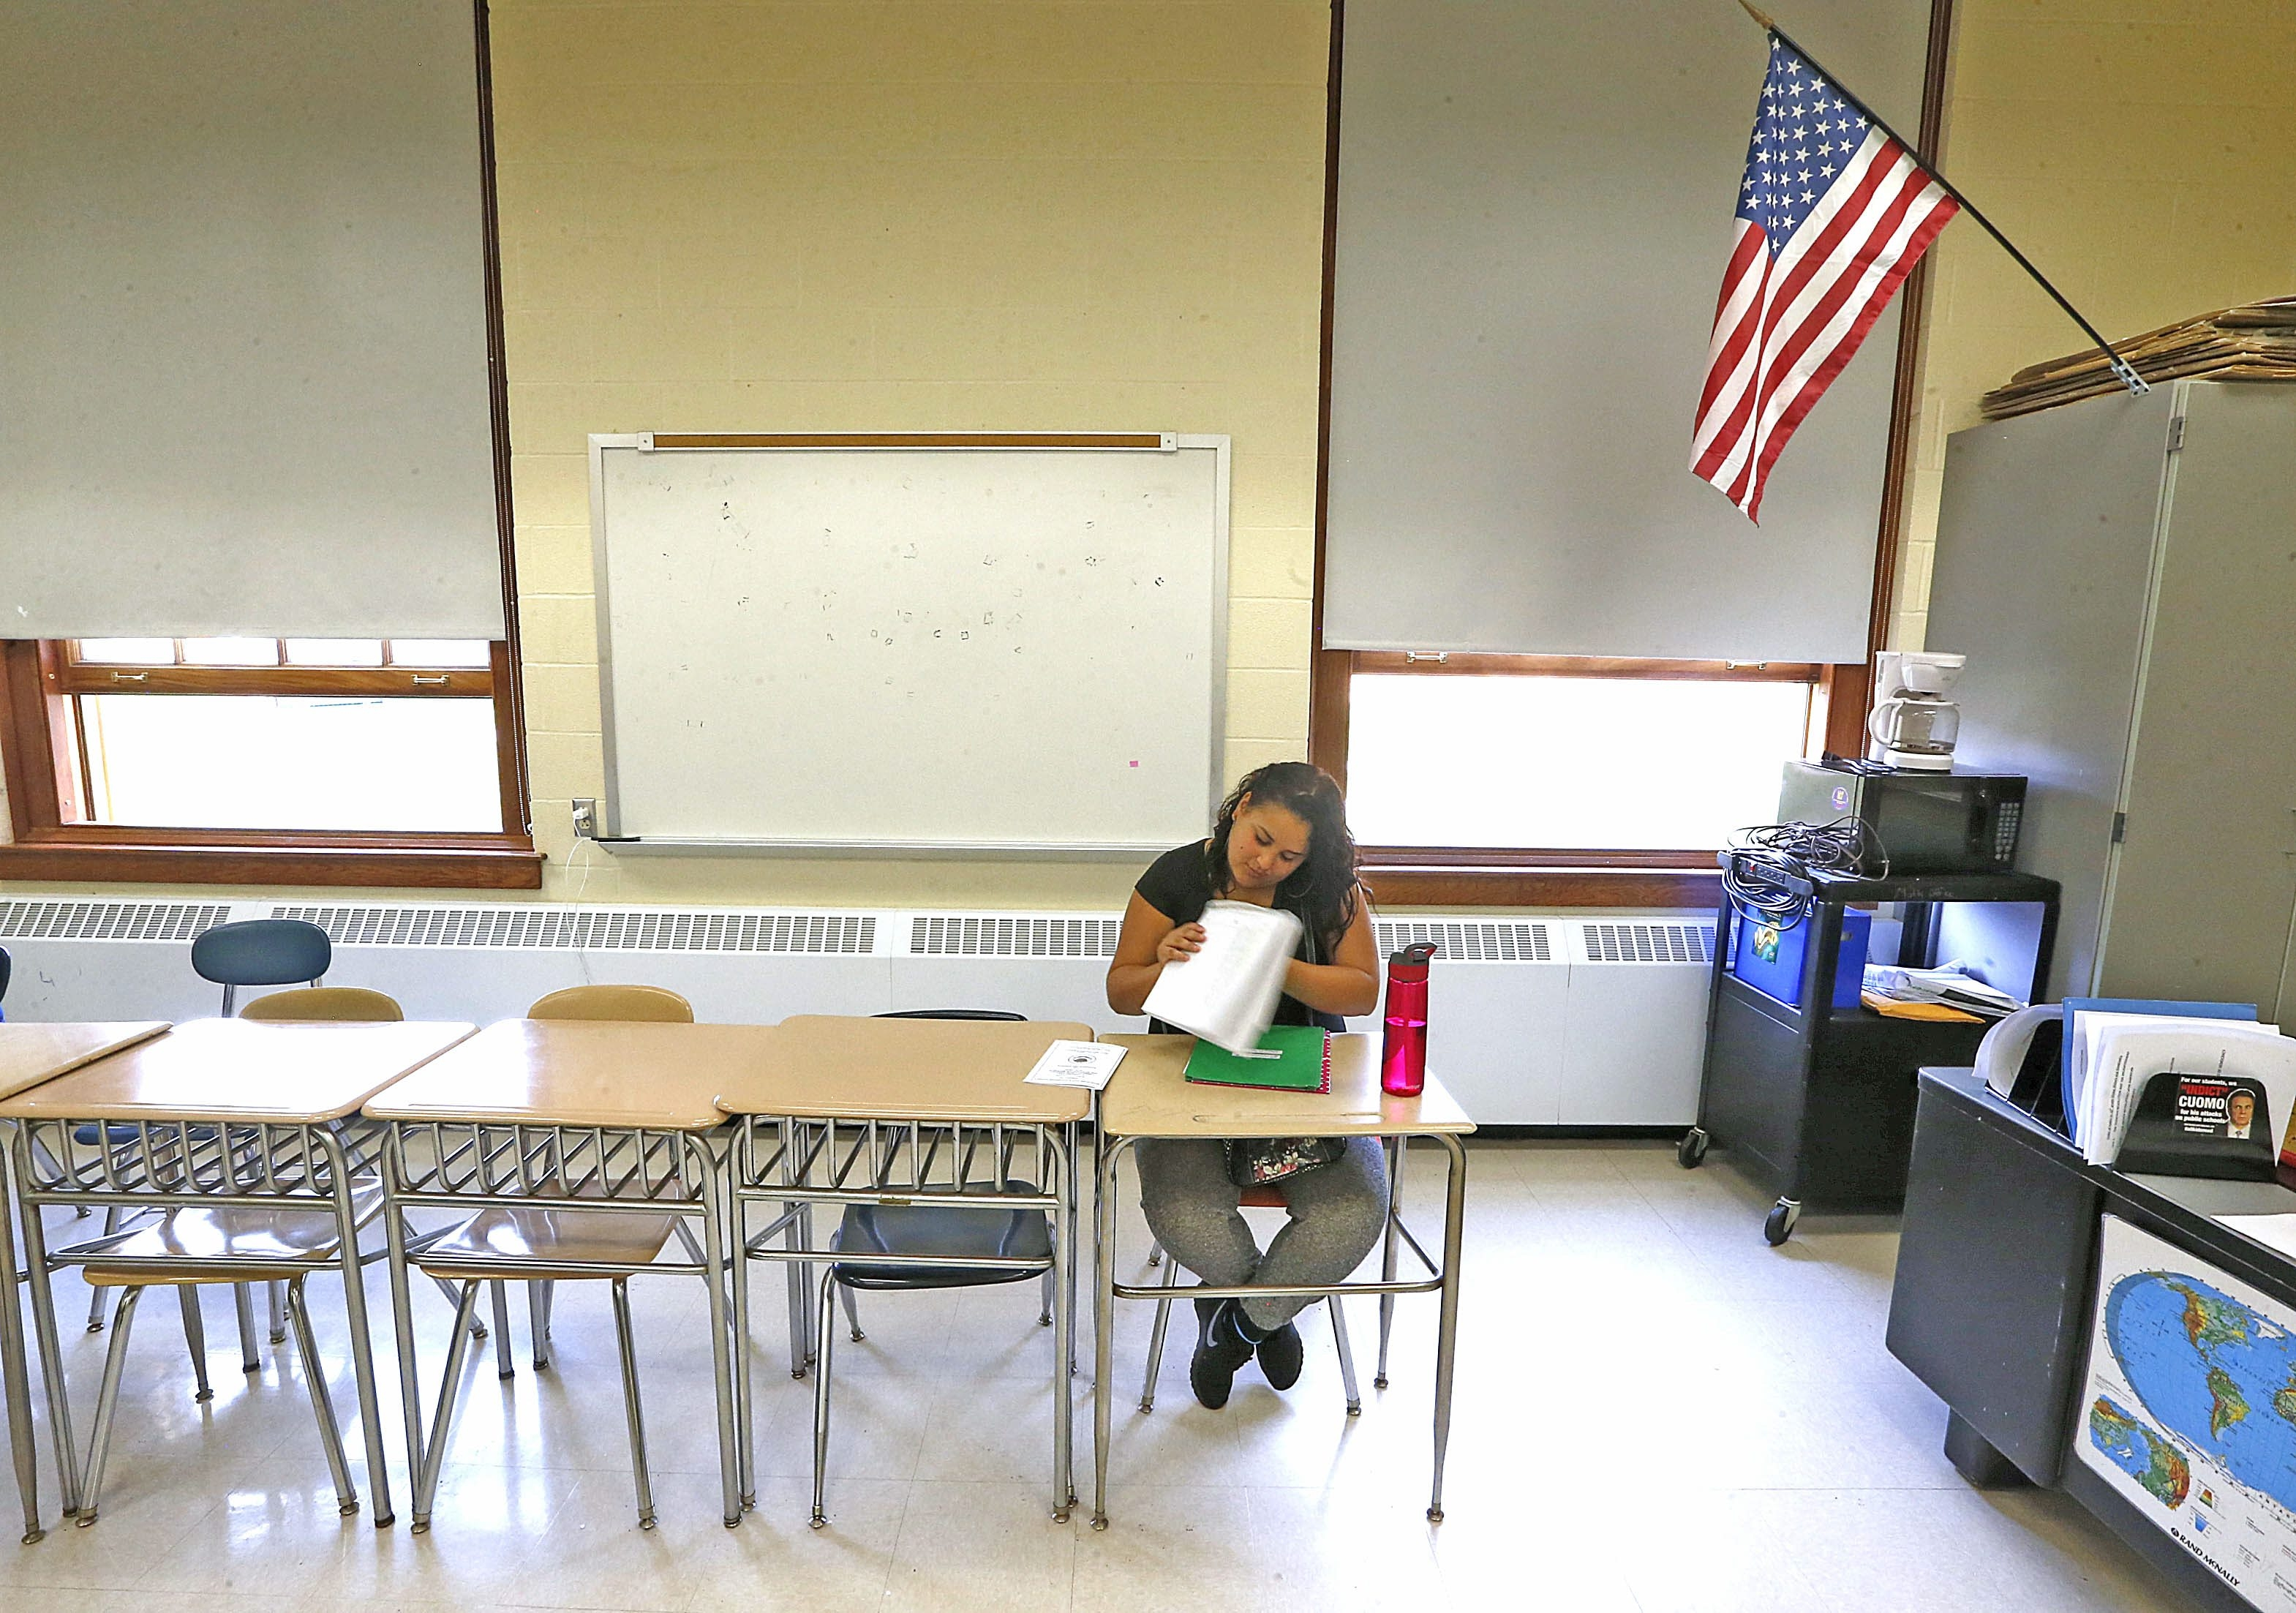 In Buffalo's high schools last year, one-third of students missed at least 20 percent of the school year.